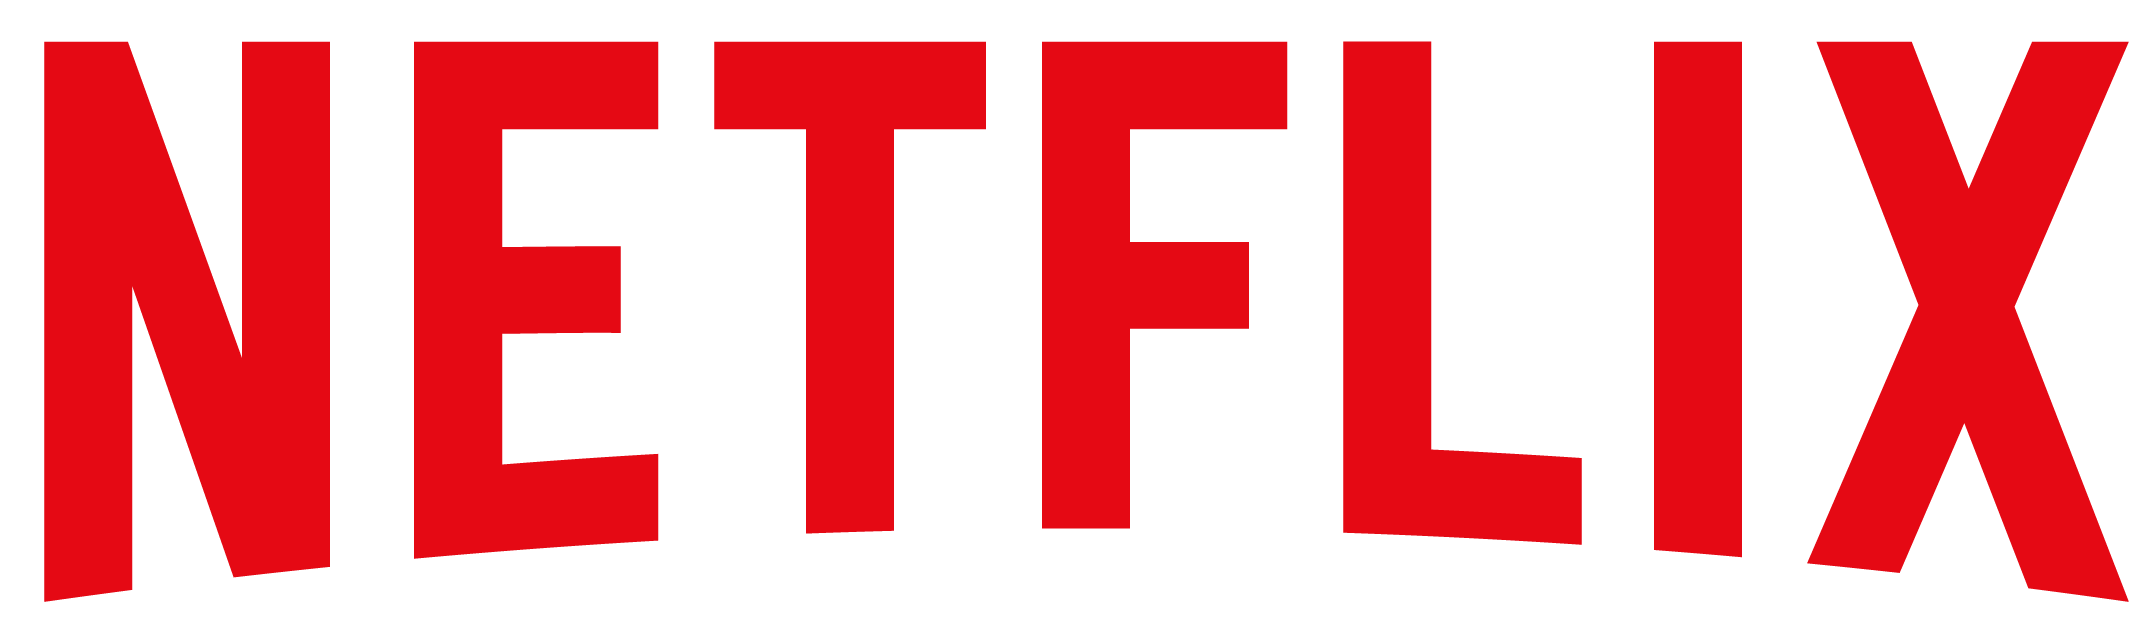 red-netflix-logo-text-png-3